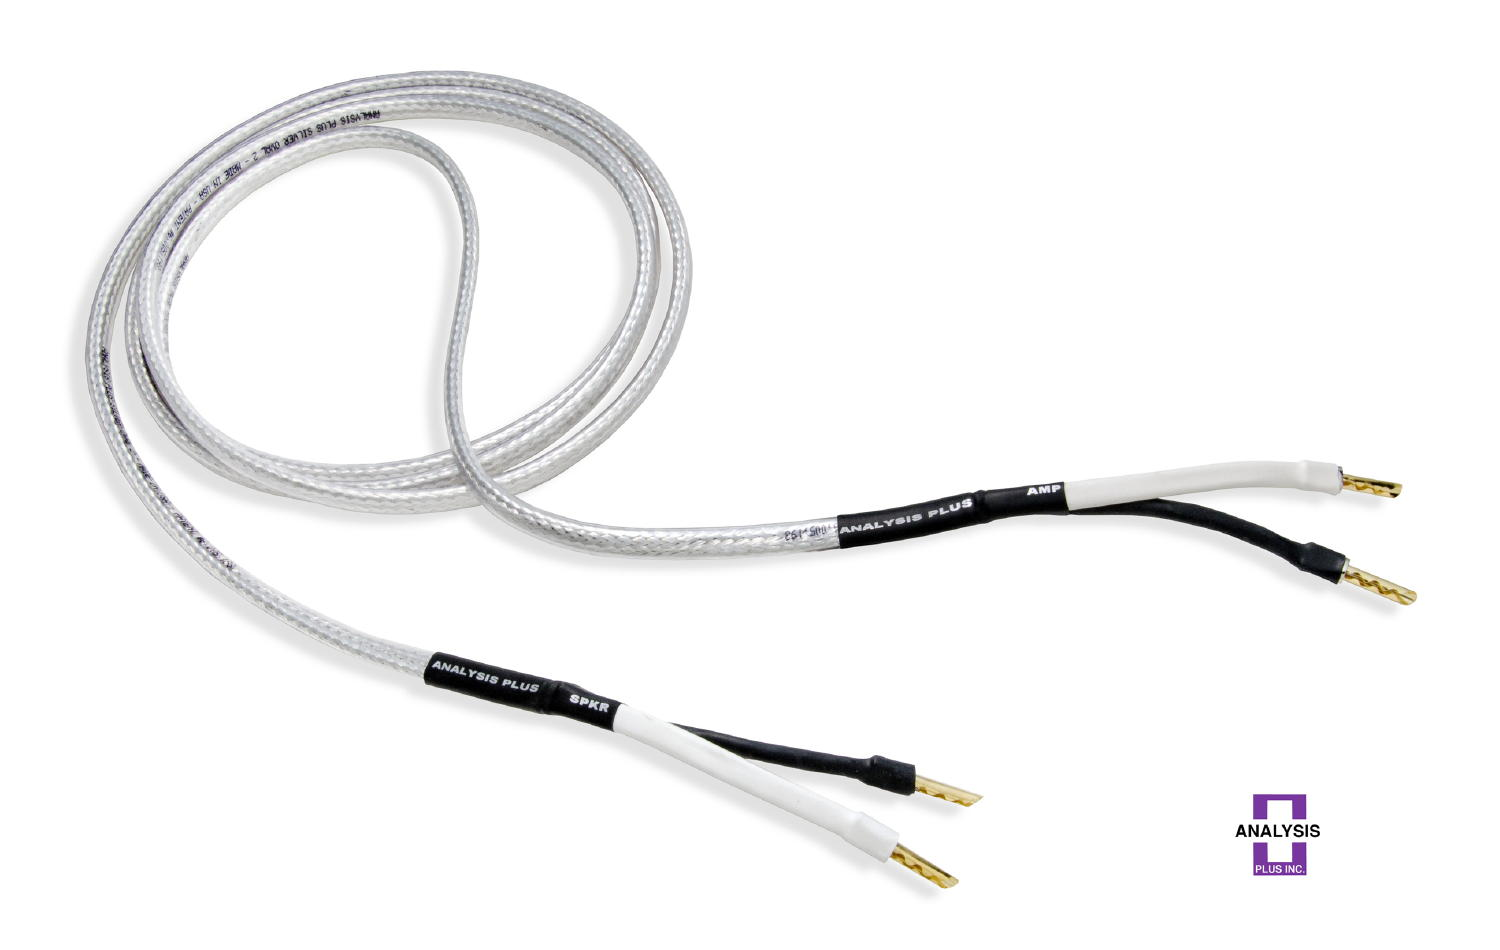 Analysis Plus Silver Oval 2 Speaker Cable Positive Feedback Component Wiring Customsuburb Silverovaltwo